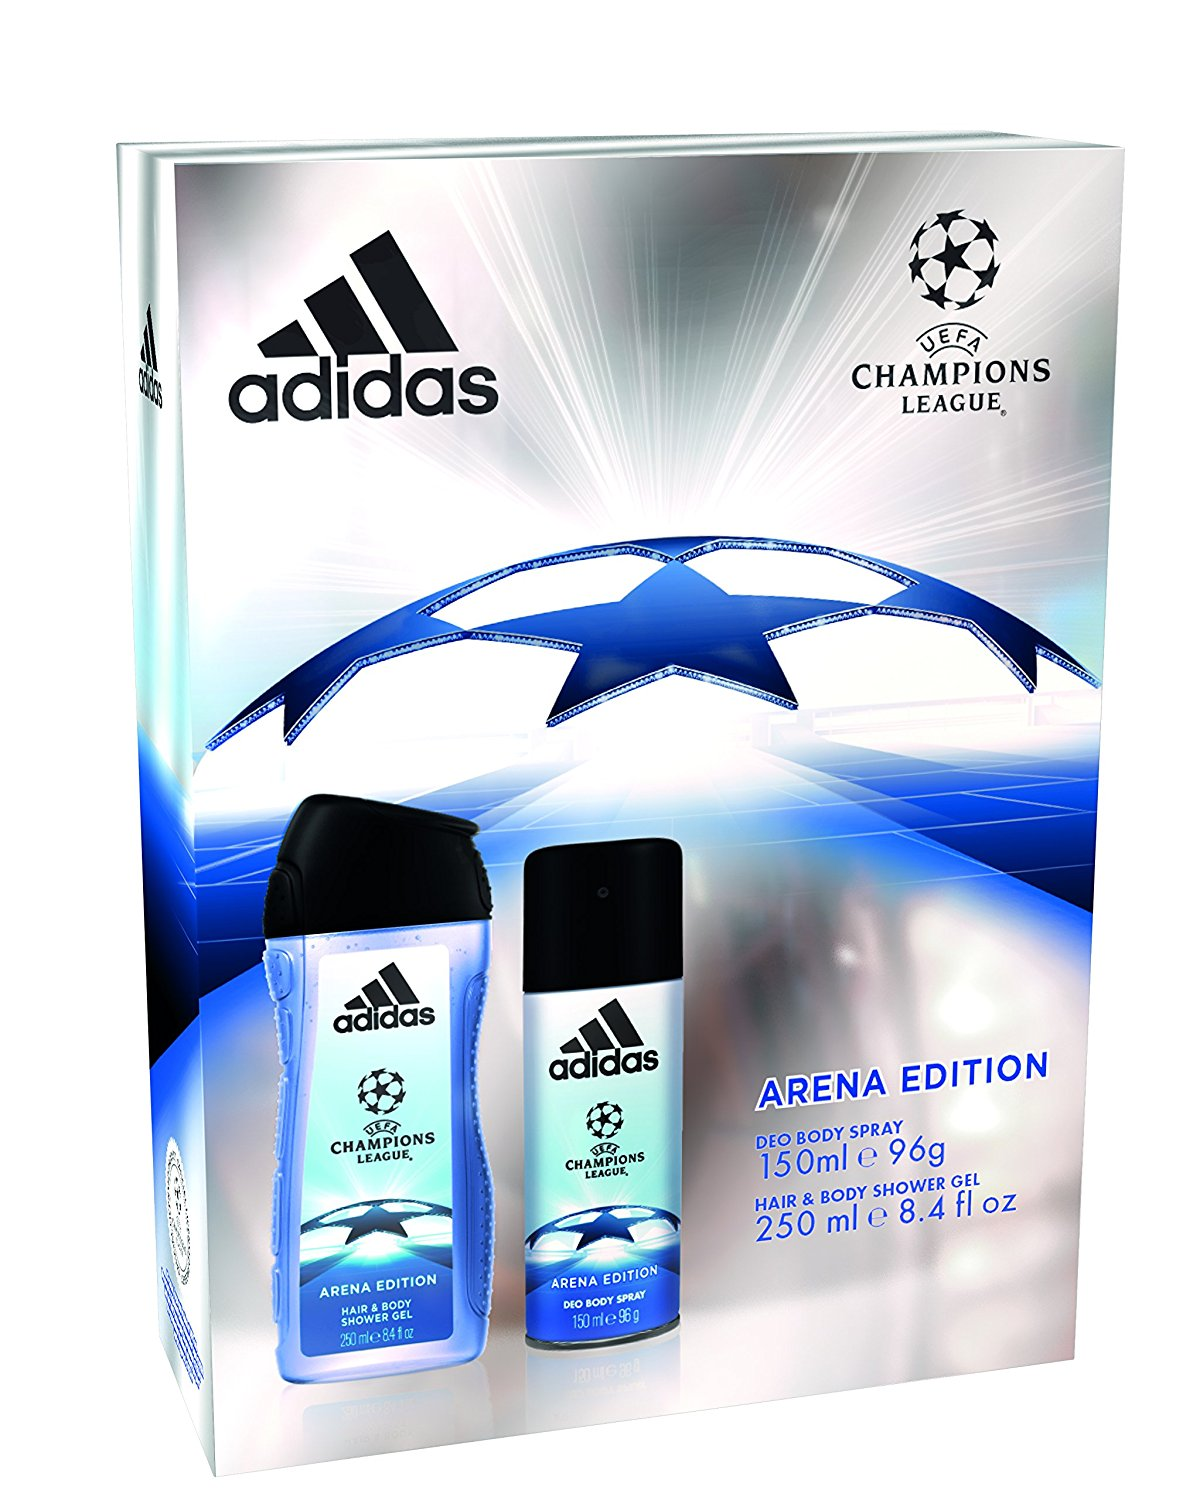 23dc3a57ffd Adidas UEFA Arena Edition Body Spray & Shower Gel Gift Set - We celebrate  your life events in style